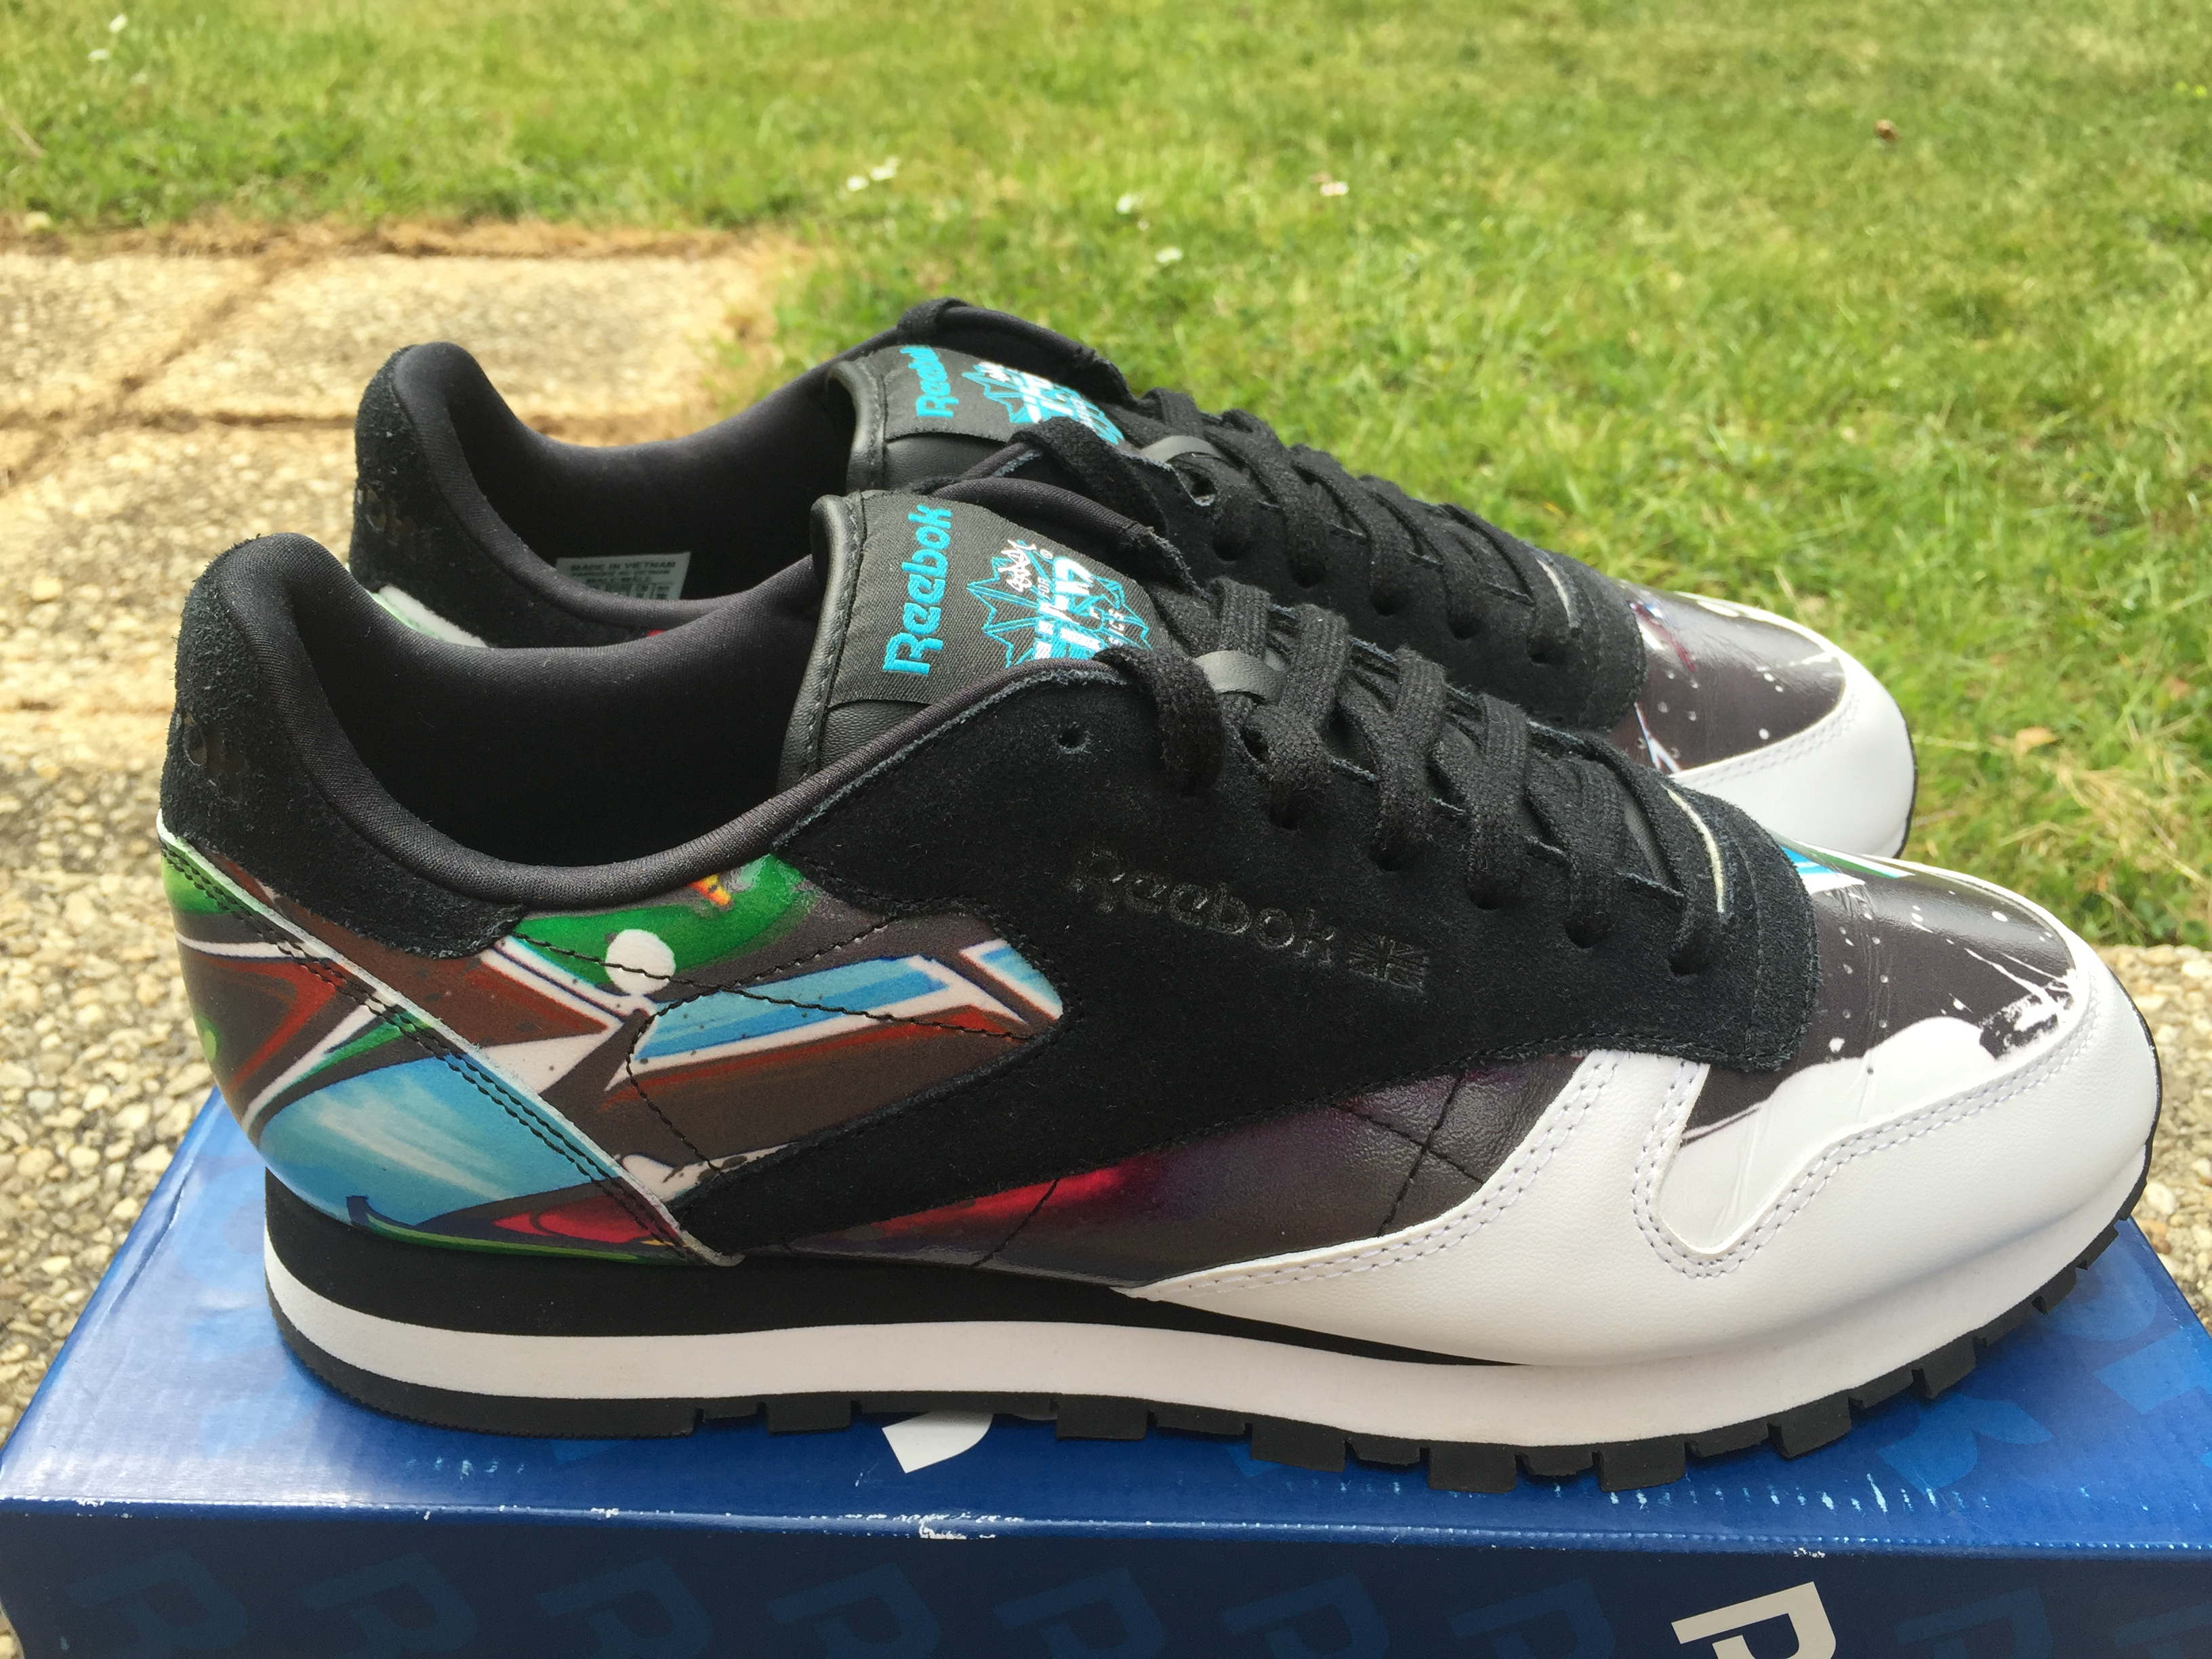 Reebok Reebok x Stash City Classics Chicago Classic Leather Size 10 -  Low-Top Sneakers for Sale - Grailed 8dd067d0f